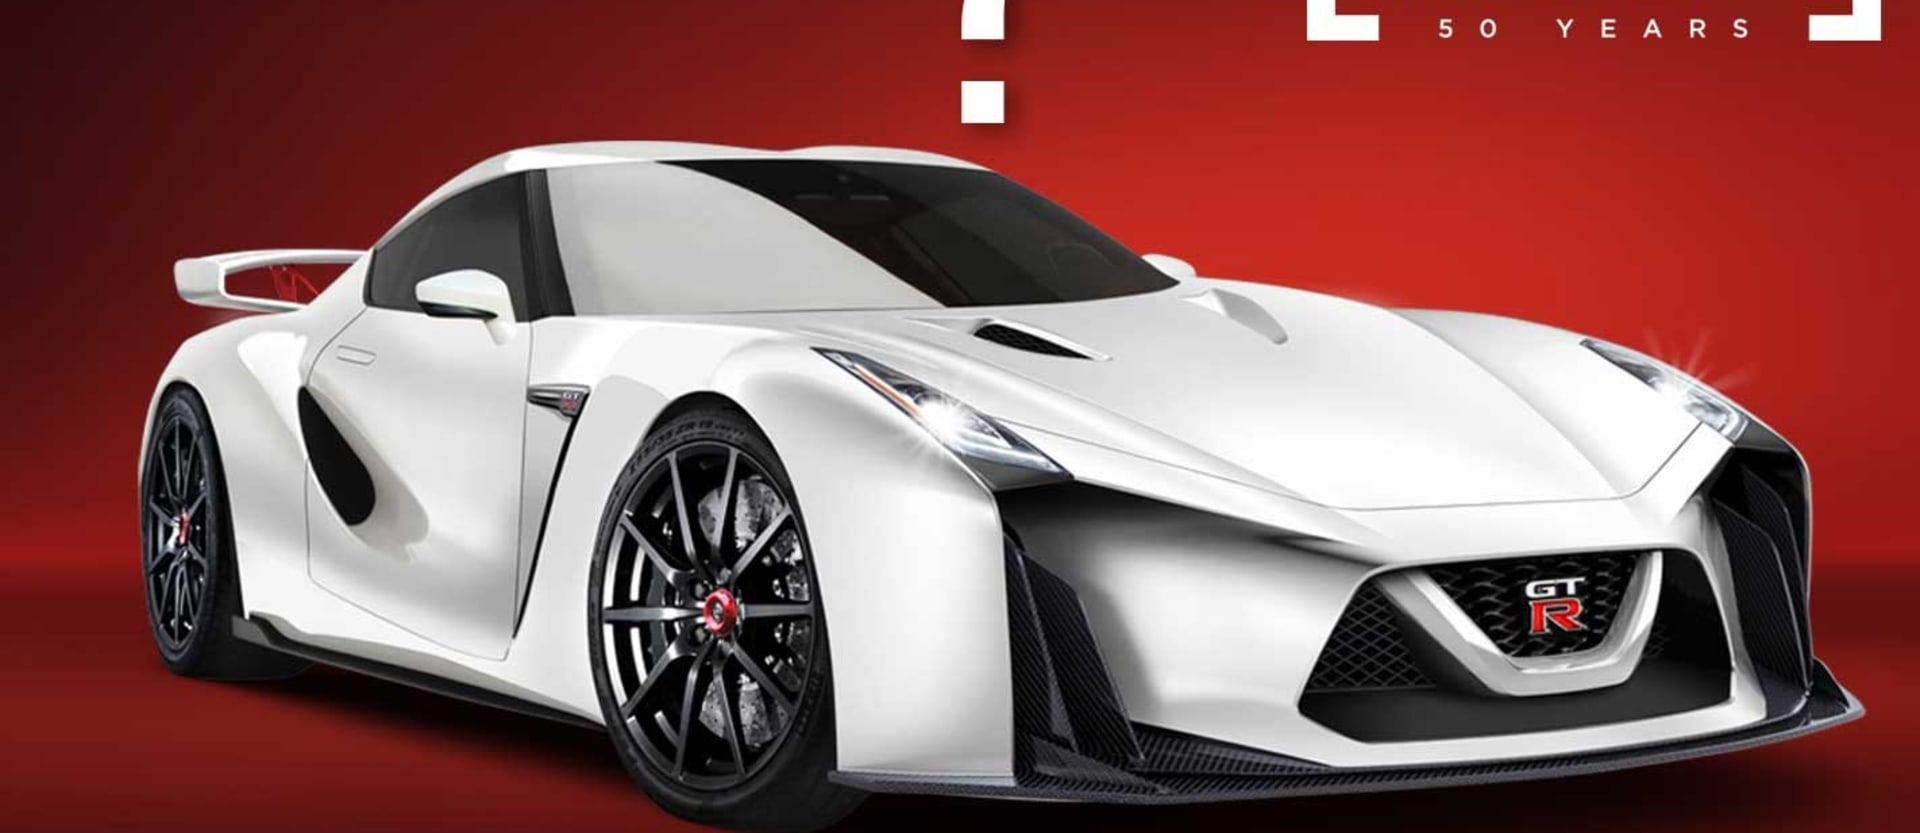 Will Nissan build the R36 GT-R